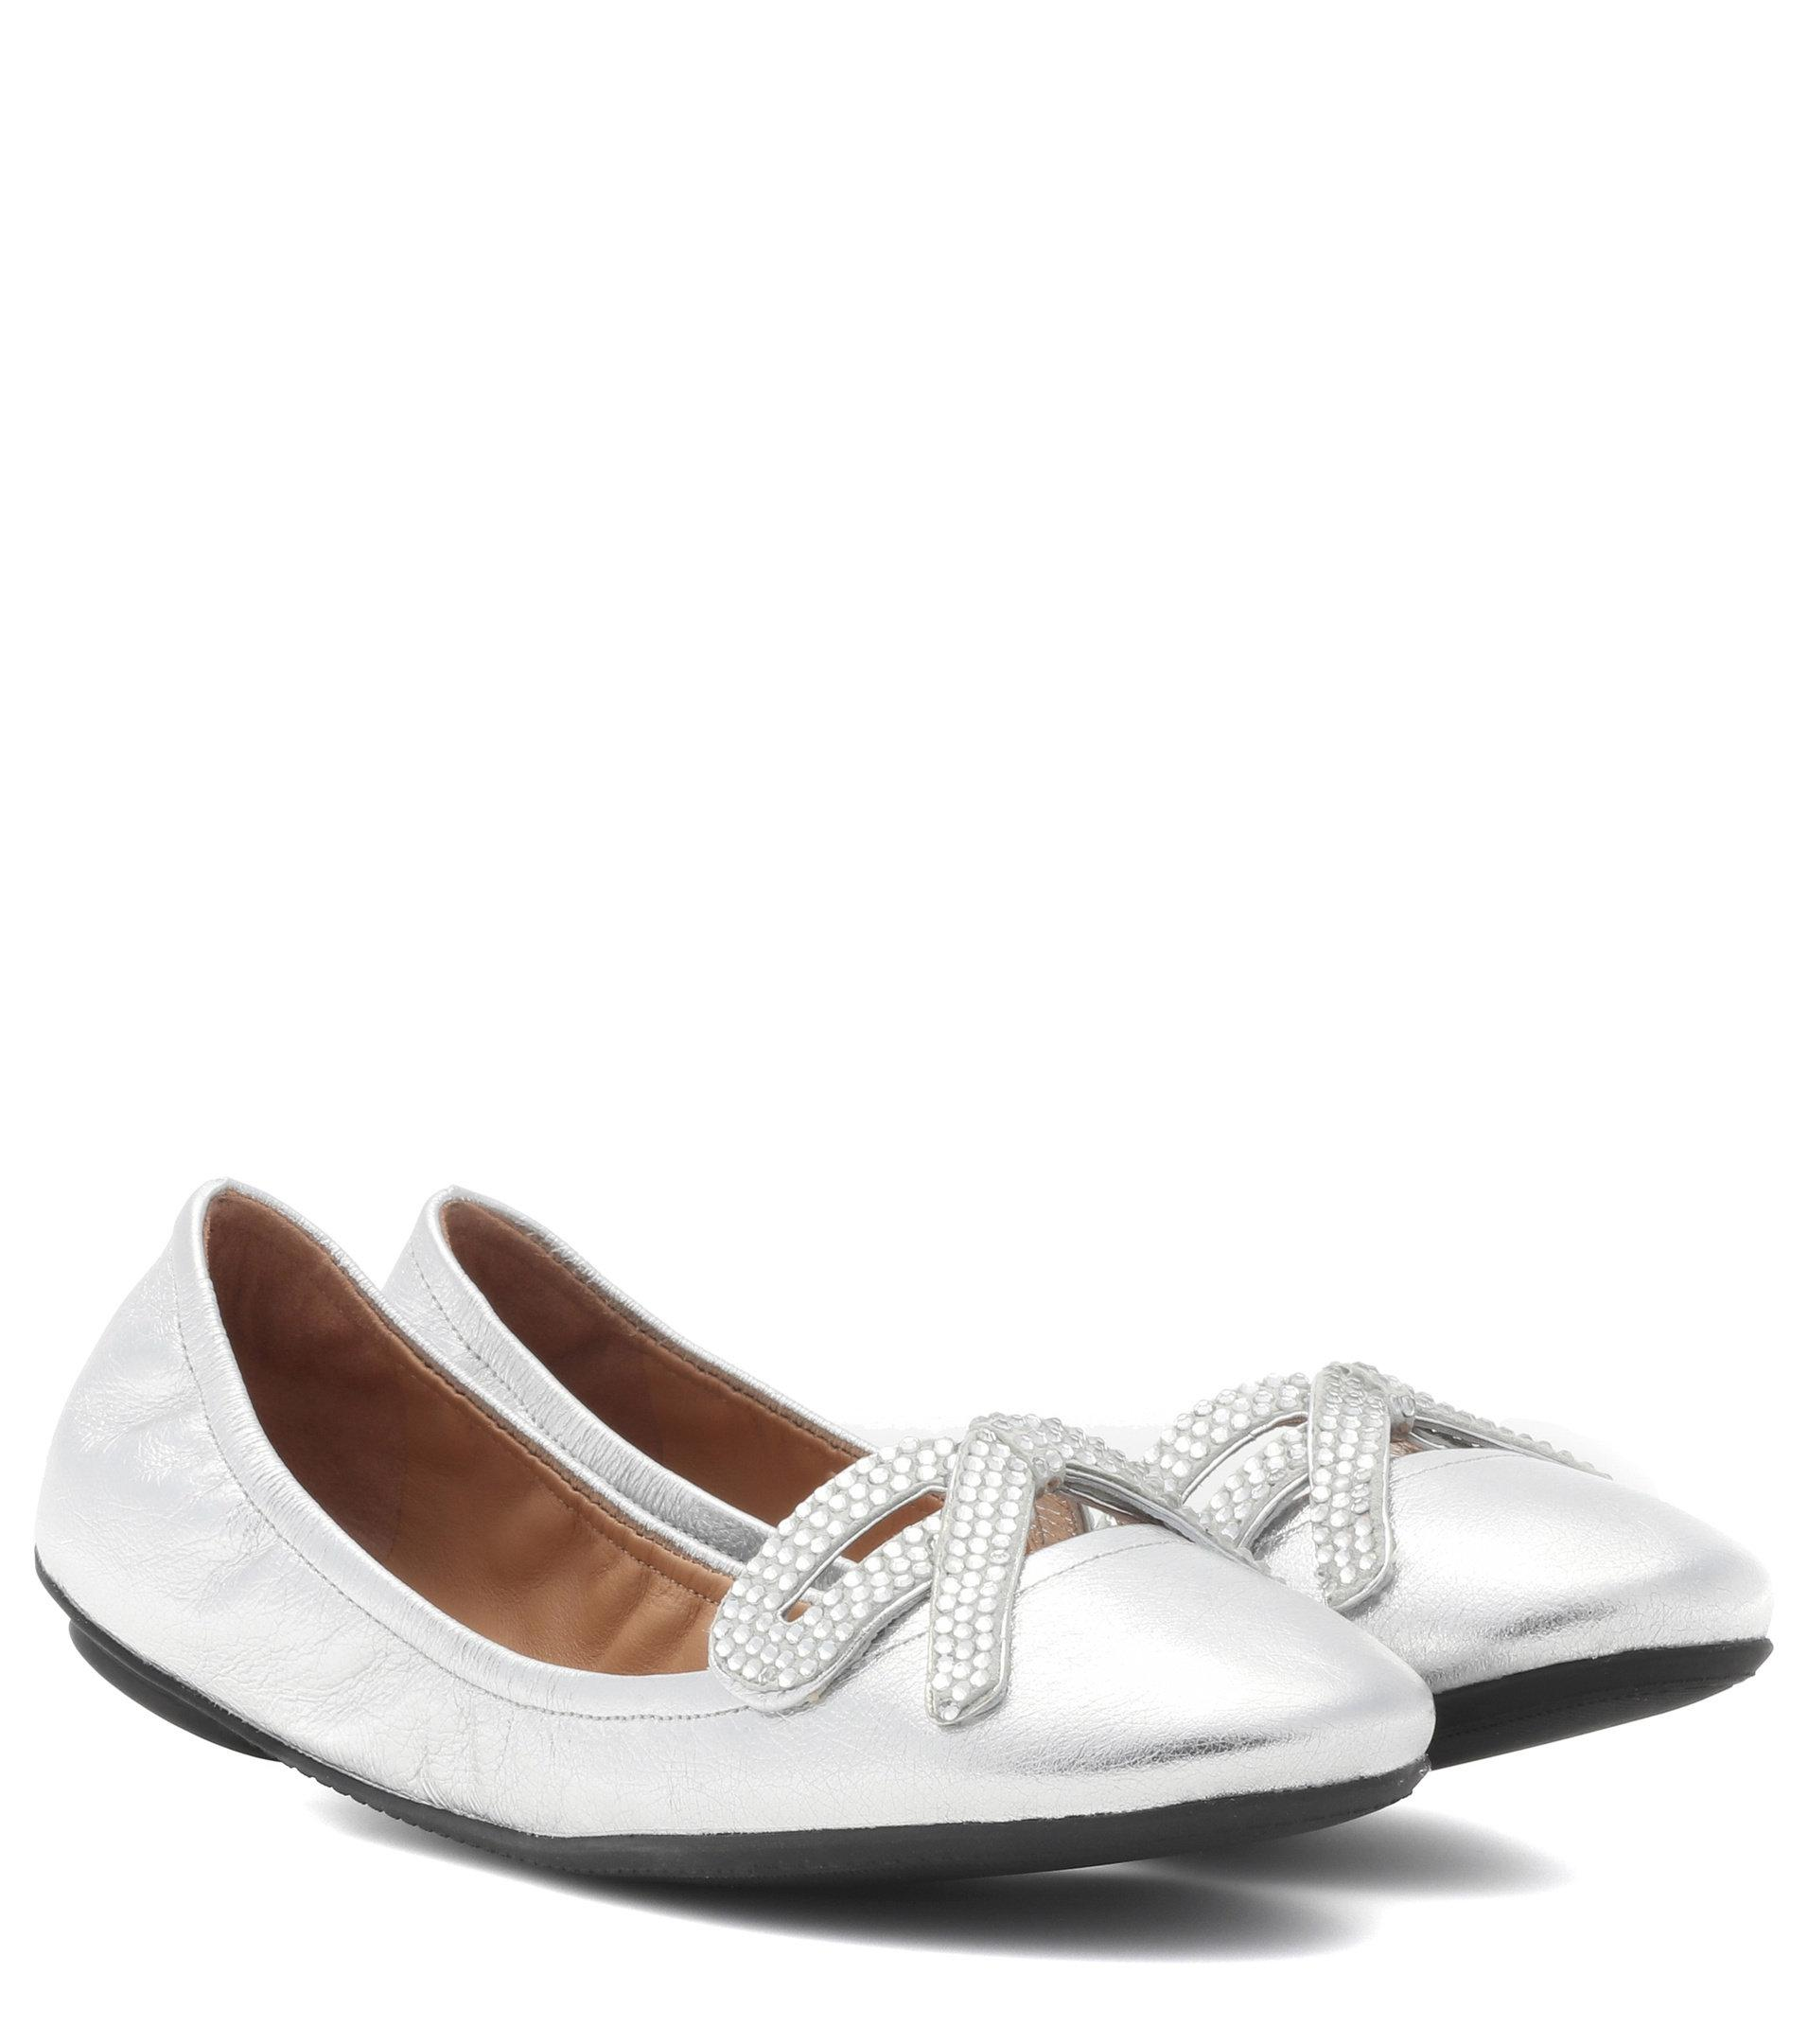 free shipping huge surprise outlet with credit card Marc Jacobs Metallic leather ballerinas very cheap discount real ER9Km